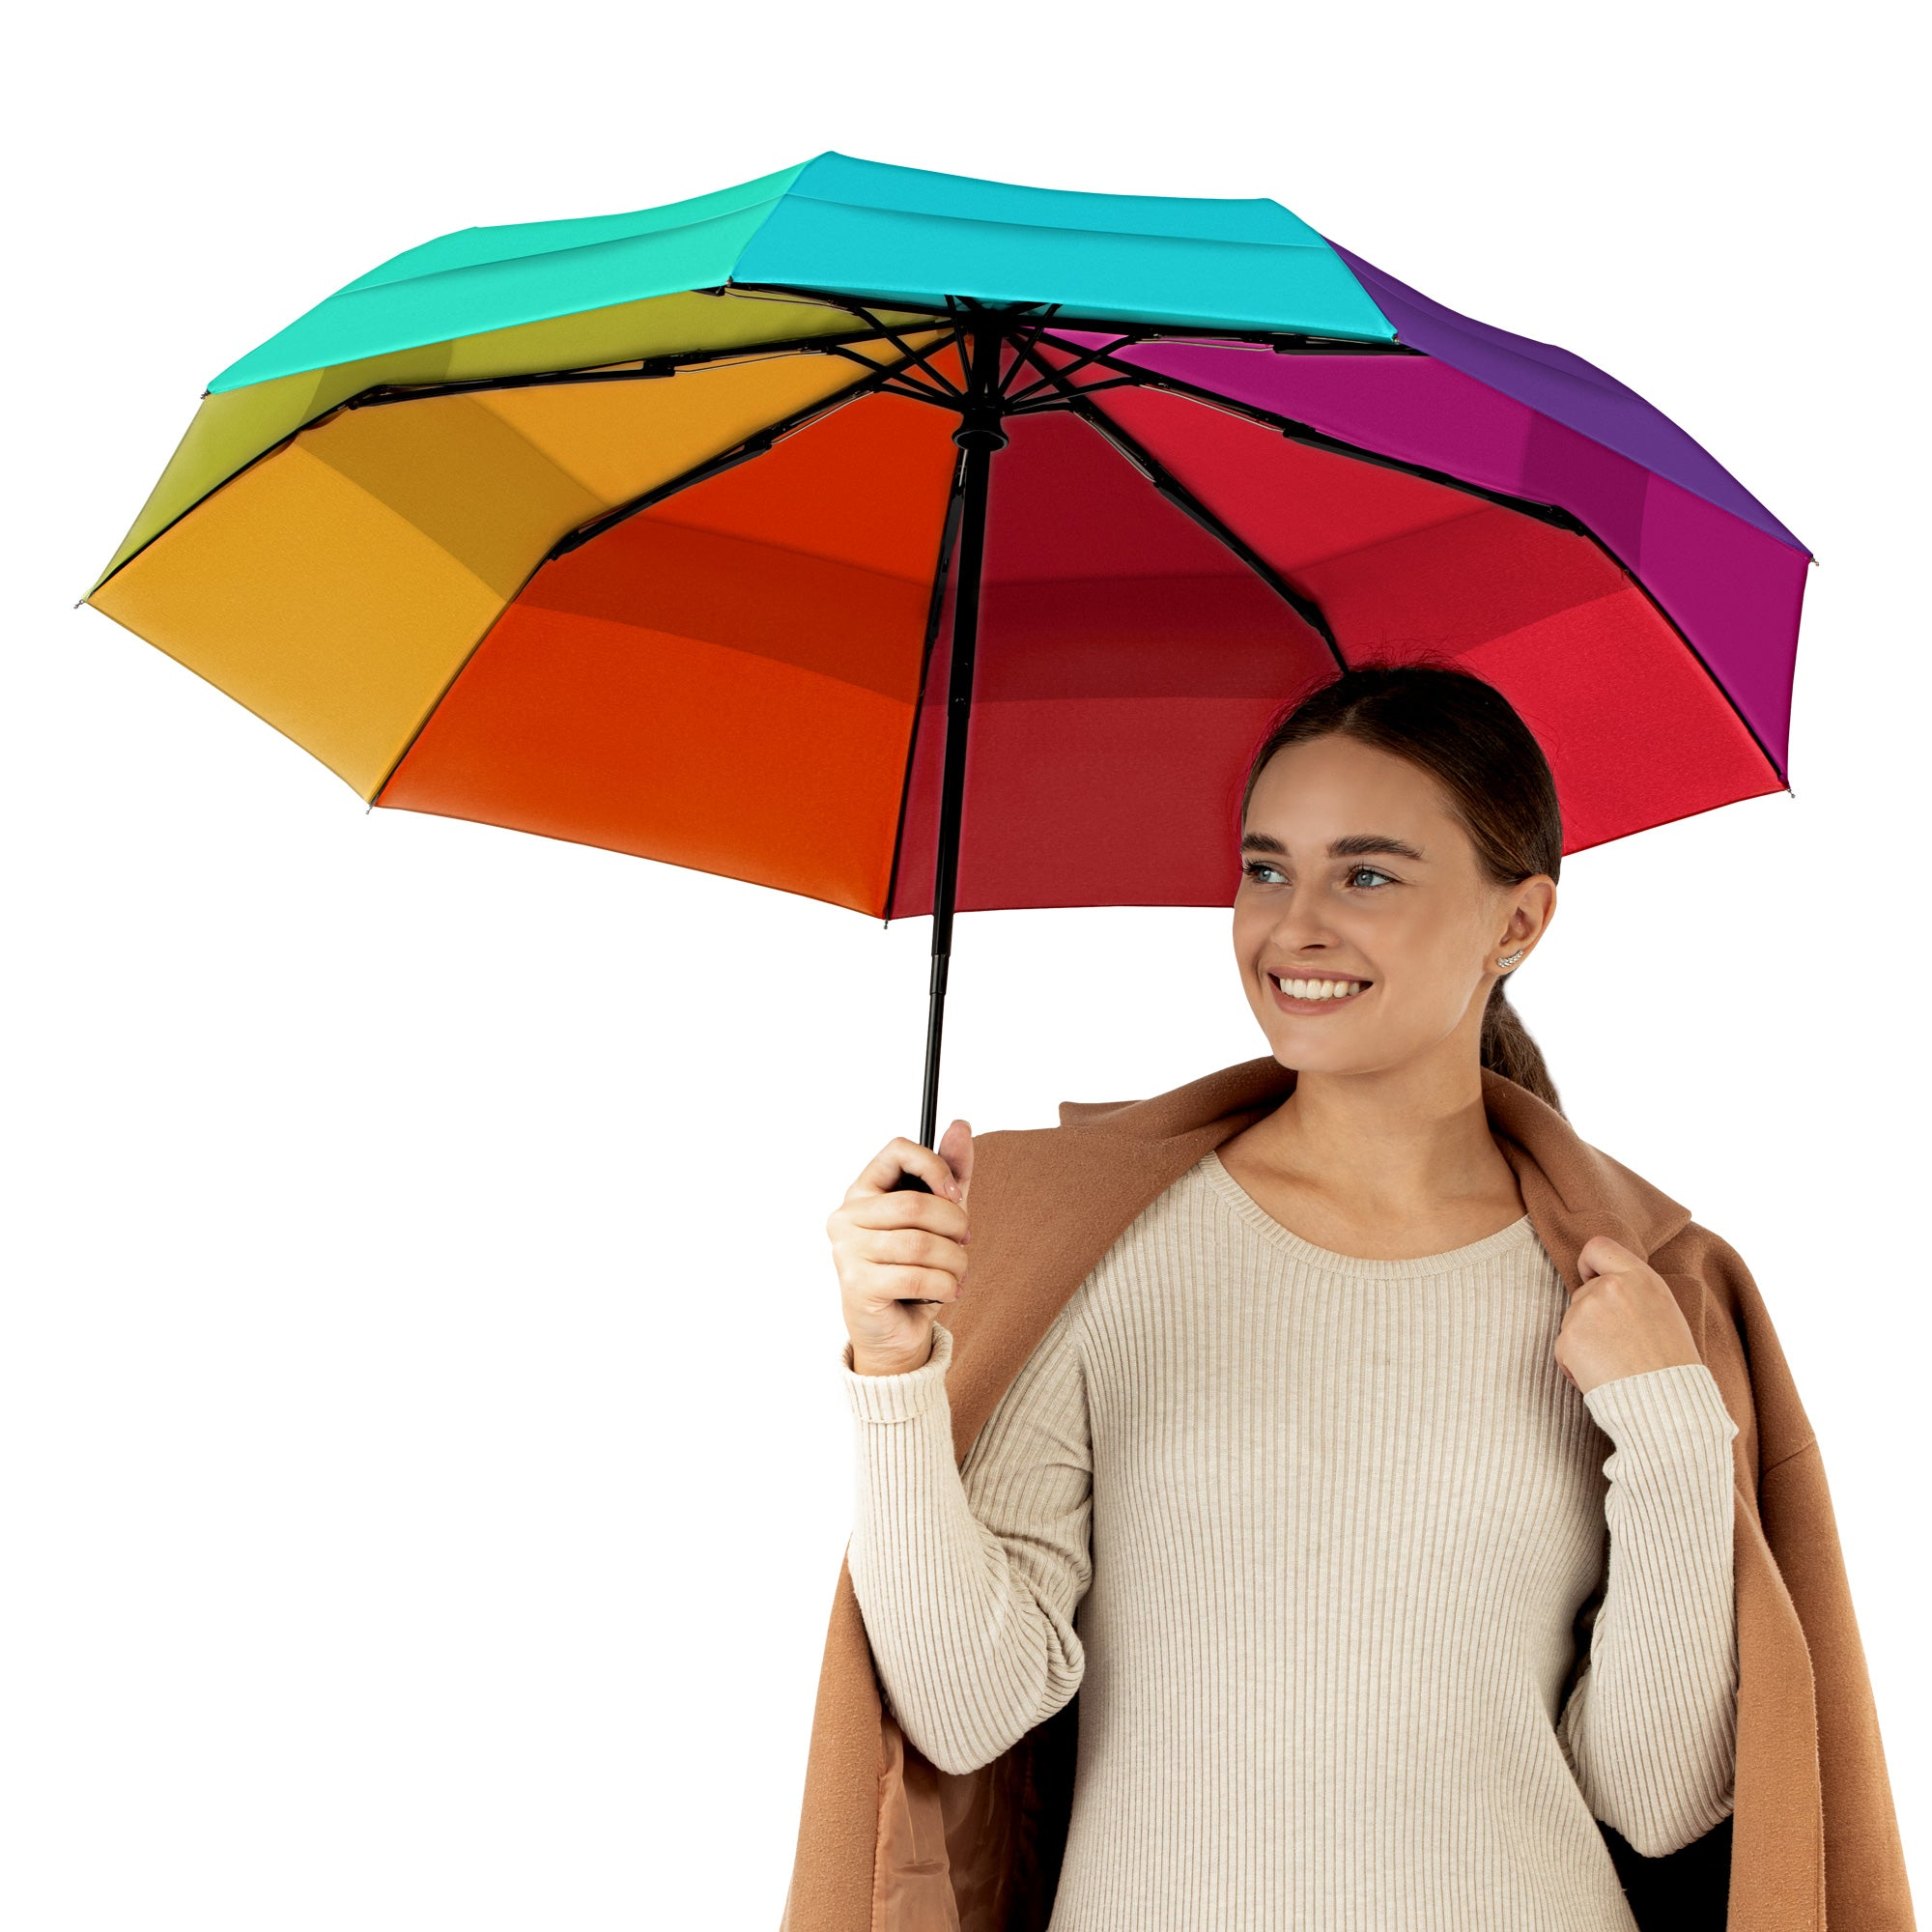 Windproof Travel Umbrella - Compact, Automatic, Rainbow